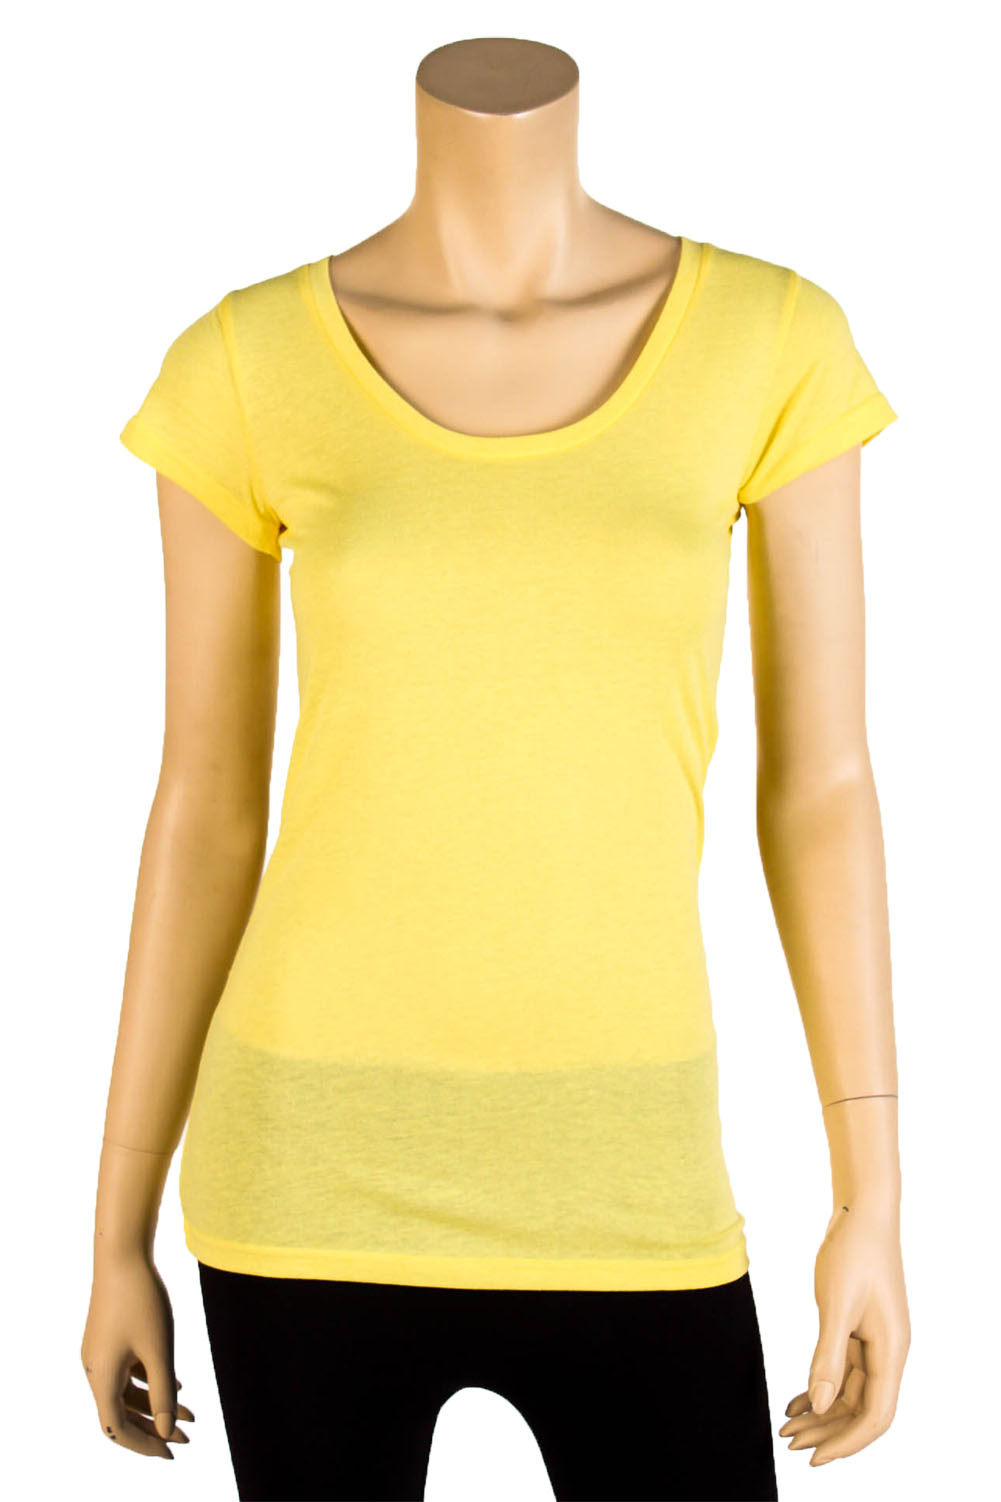 Womens basic tee t shirt short sleeve round crew neck for Round neck t shirts for ladies